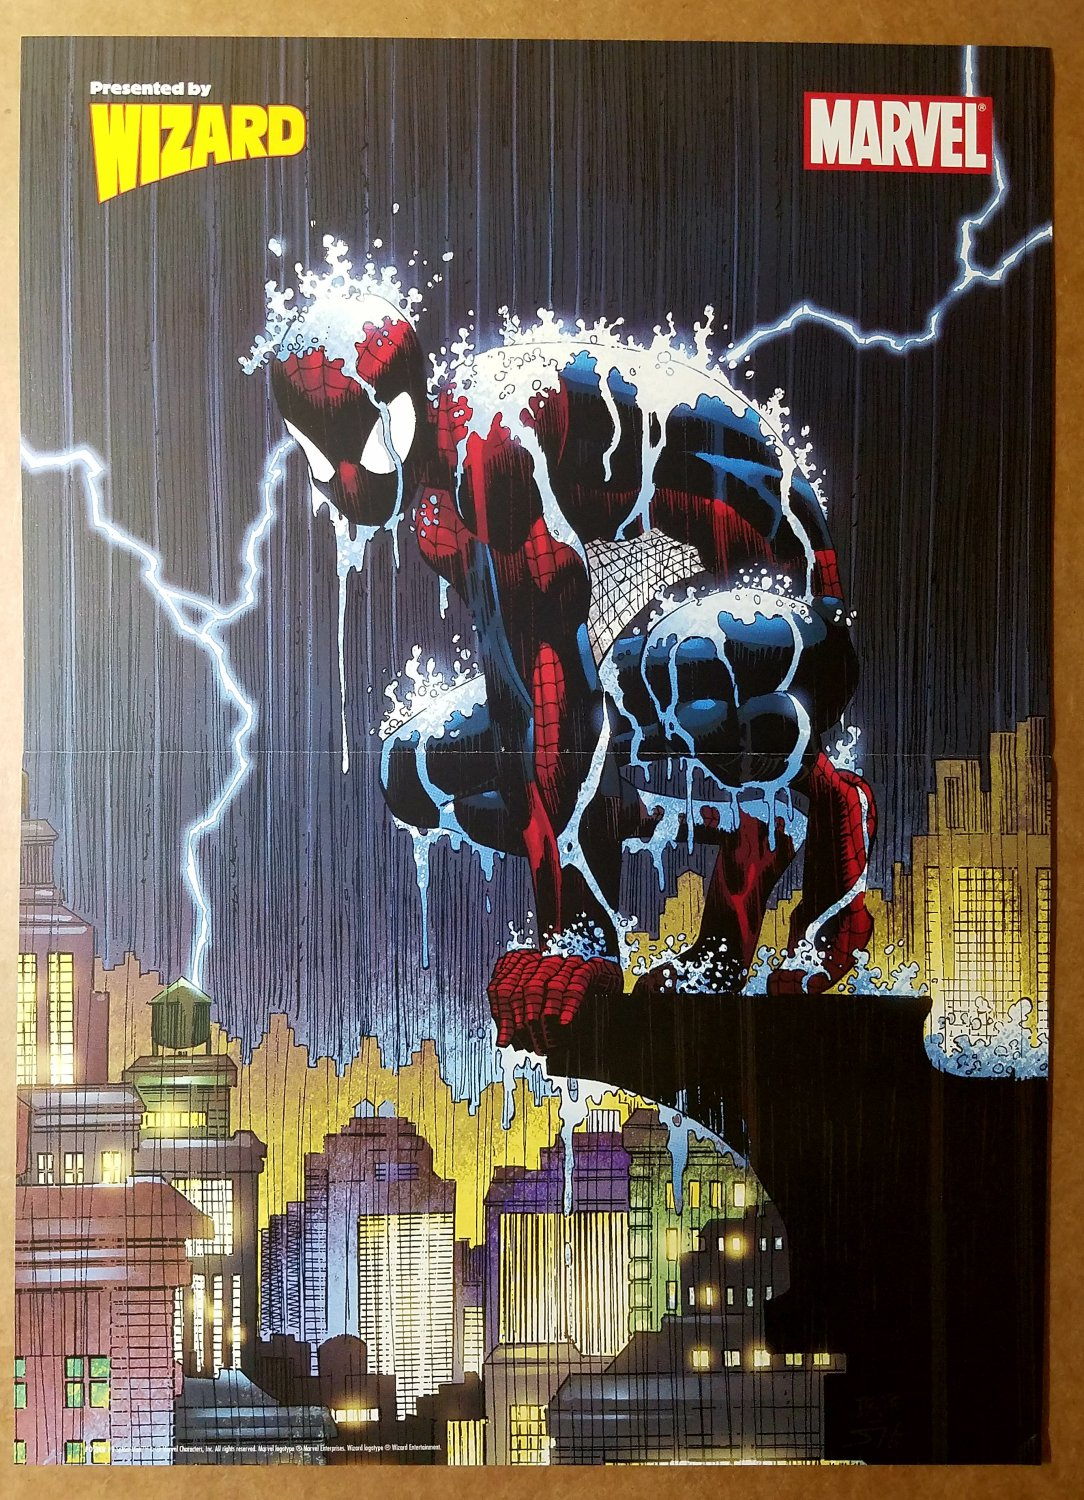 Spider-Man Rain Marvel Comics Poster by John Romita Jr